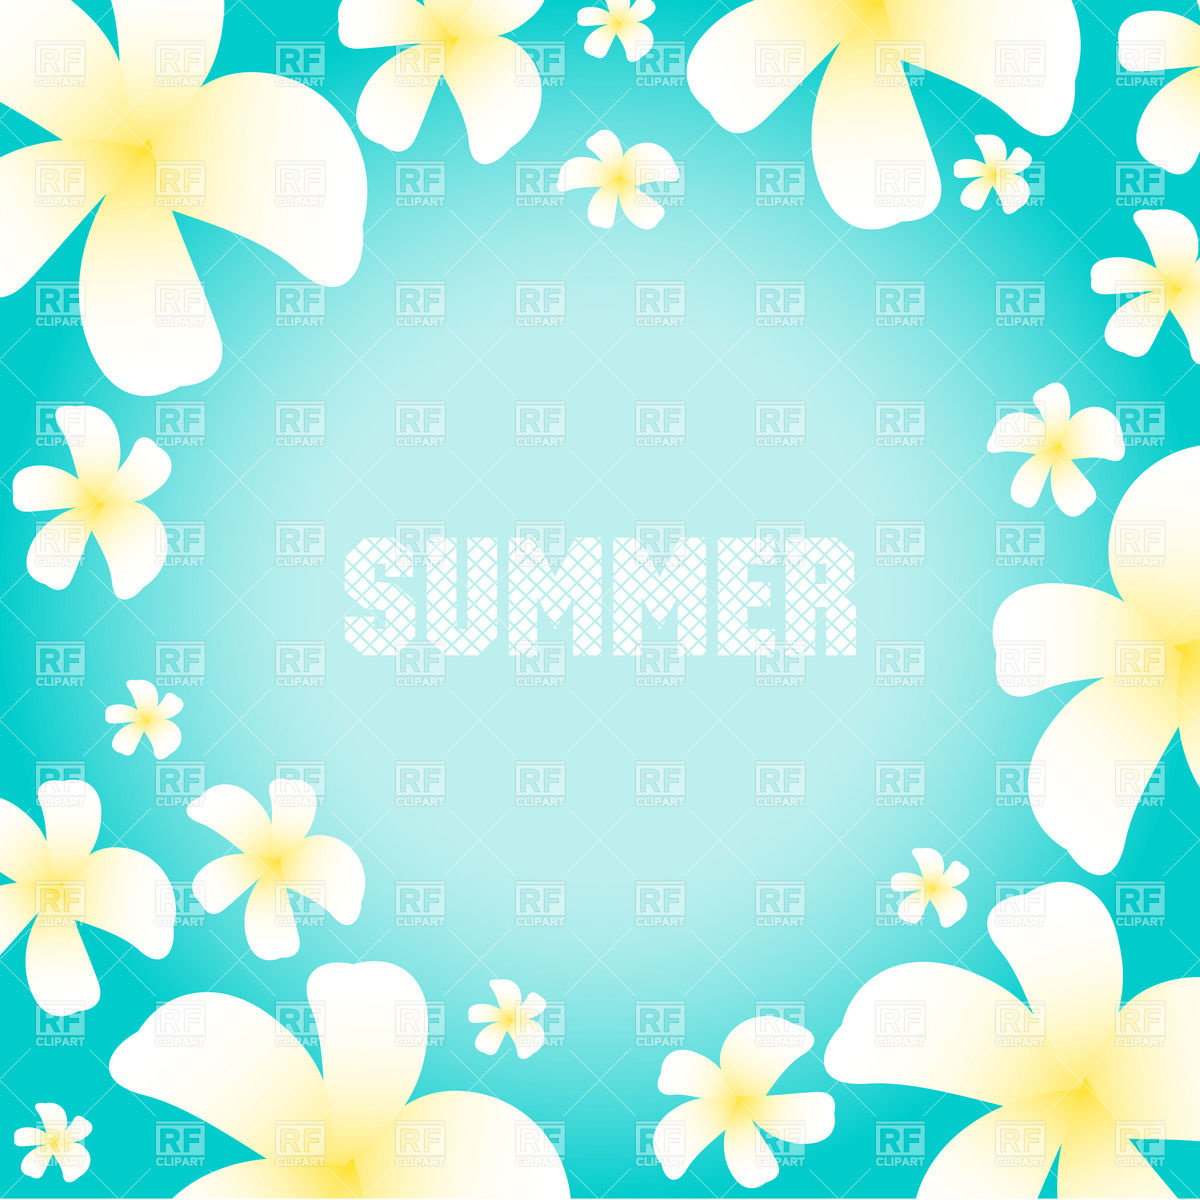 Summer time background clipart graphic black and white Free Summer Background Clipart, Download Free Clip Art, Free Clip ... graphic black and white